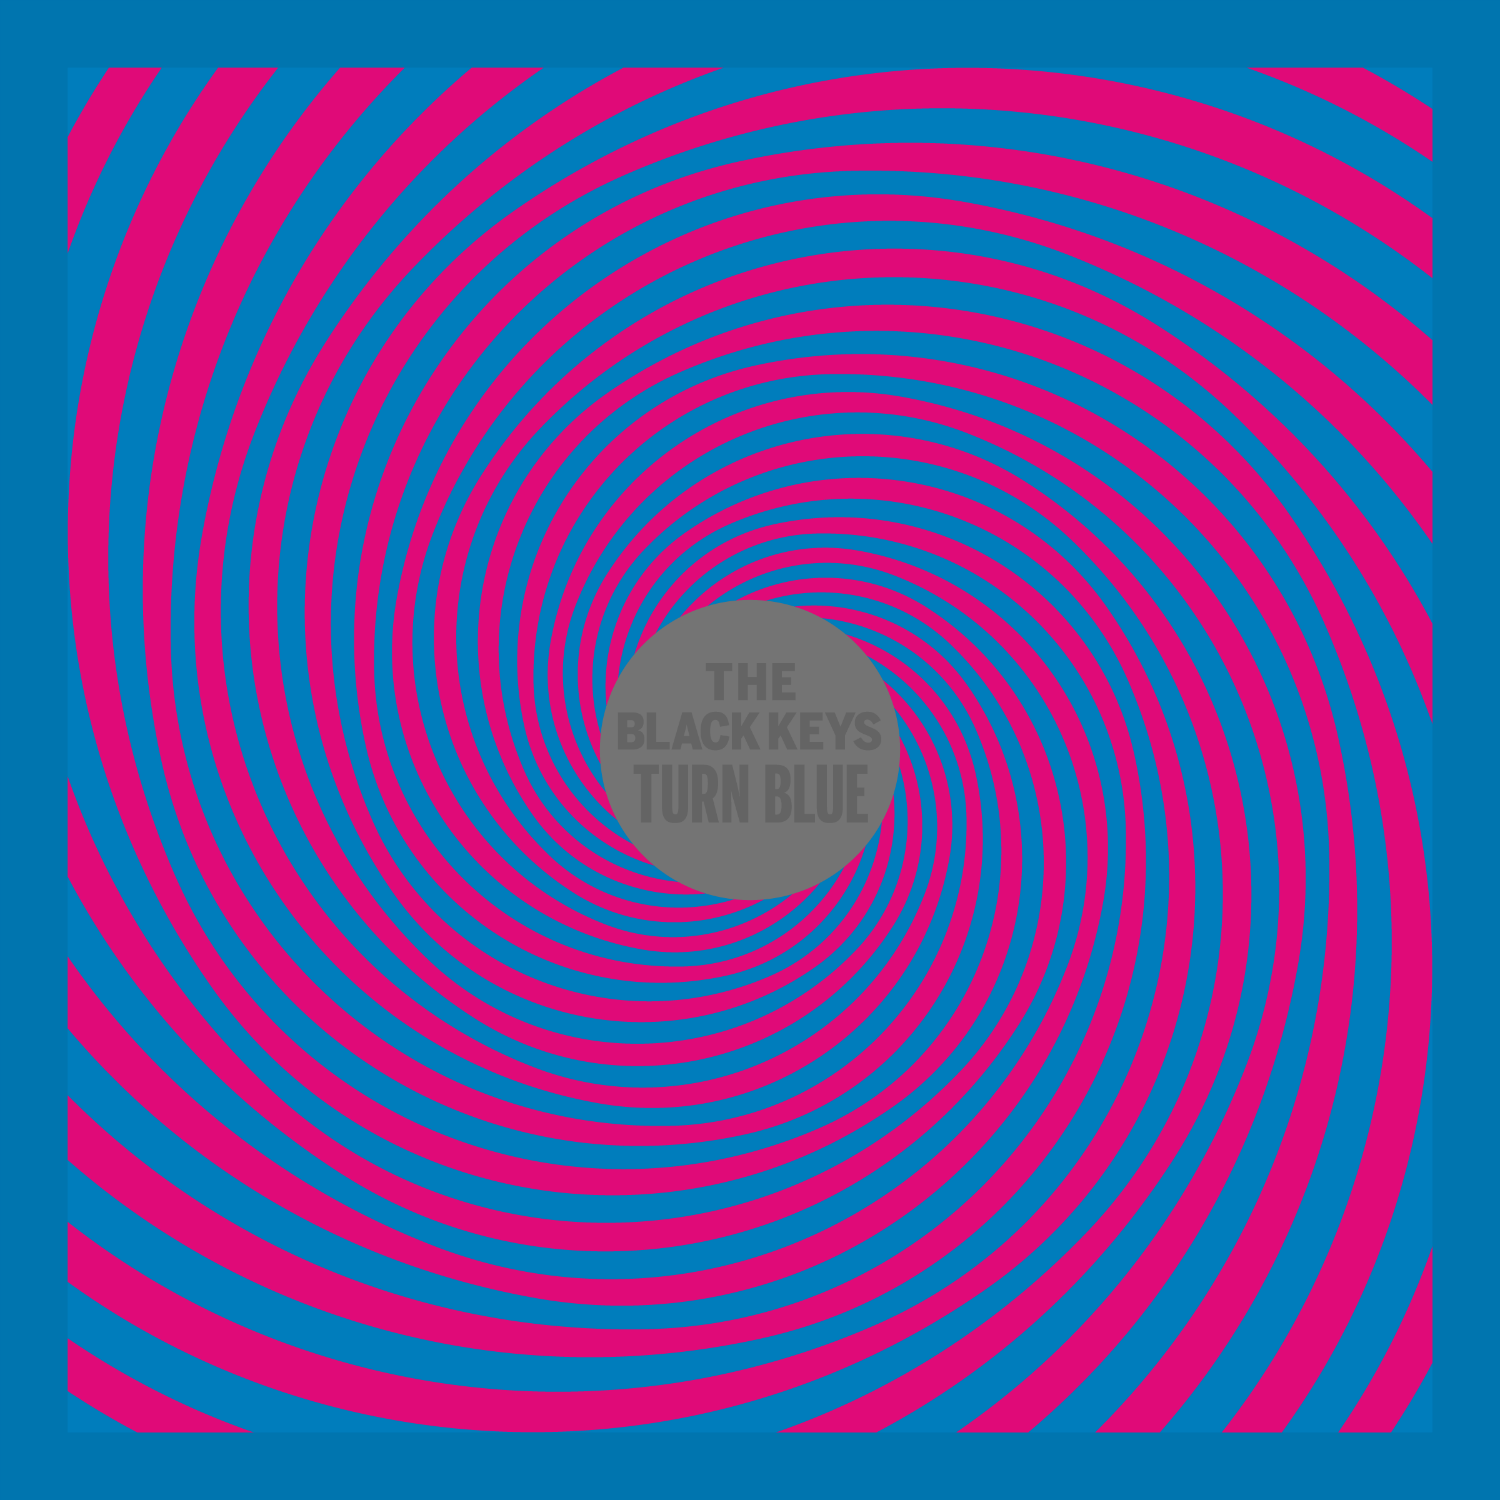 the black keys cover spiral illusion